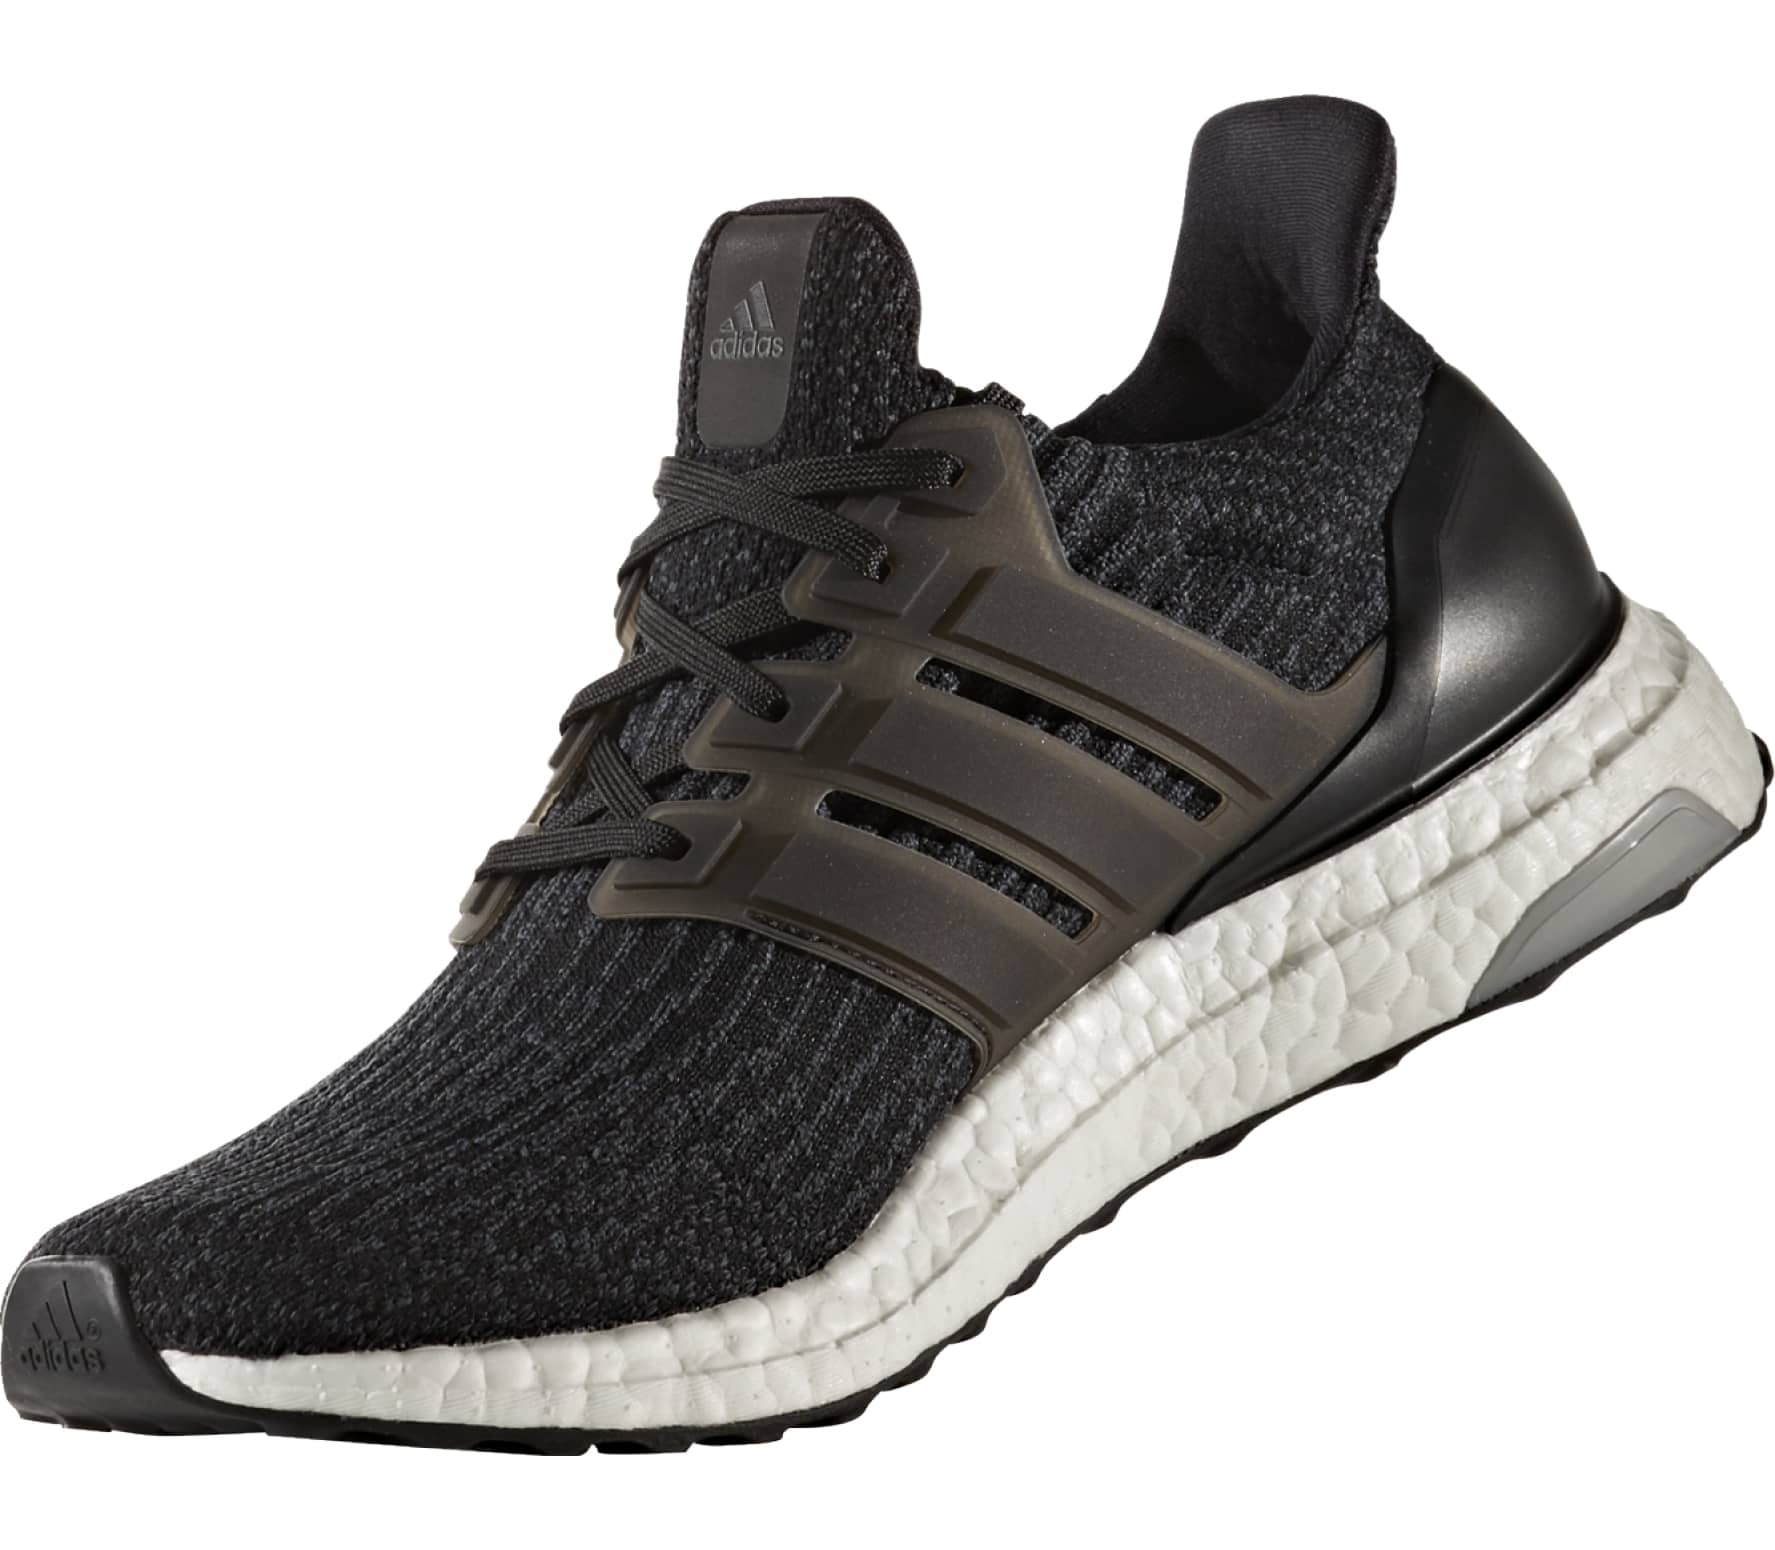 brand new c4f49 acc76 Adidas - Ultra Boost chaussures de running pour hommes (noirblanc)